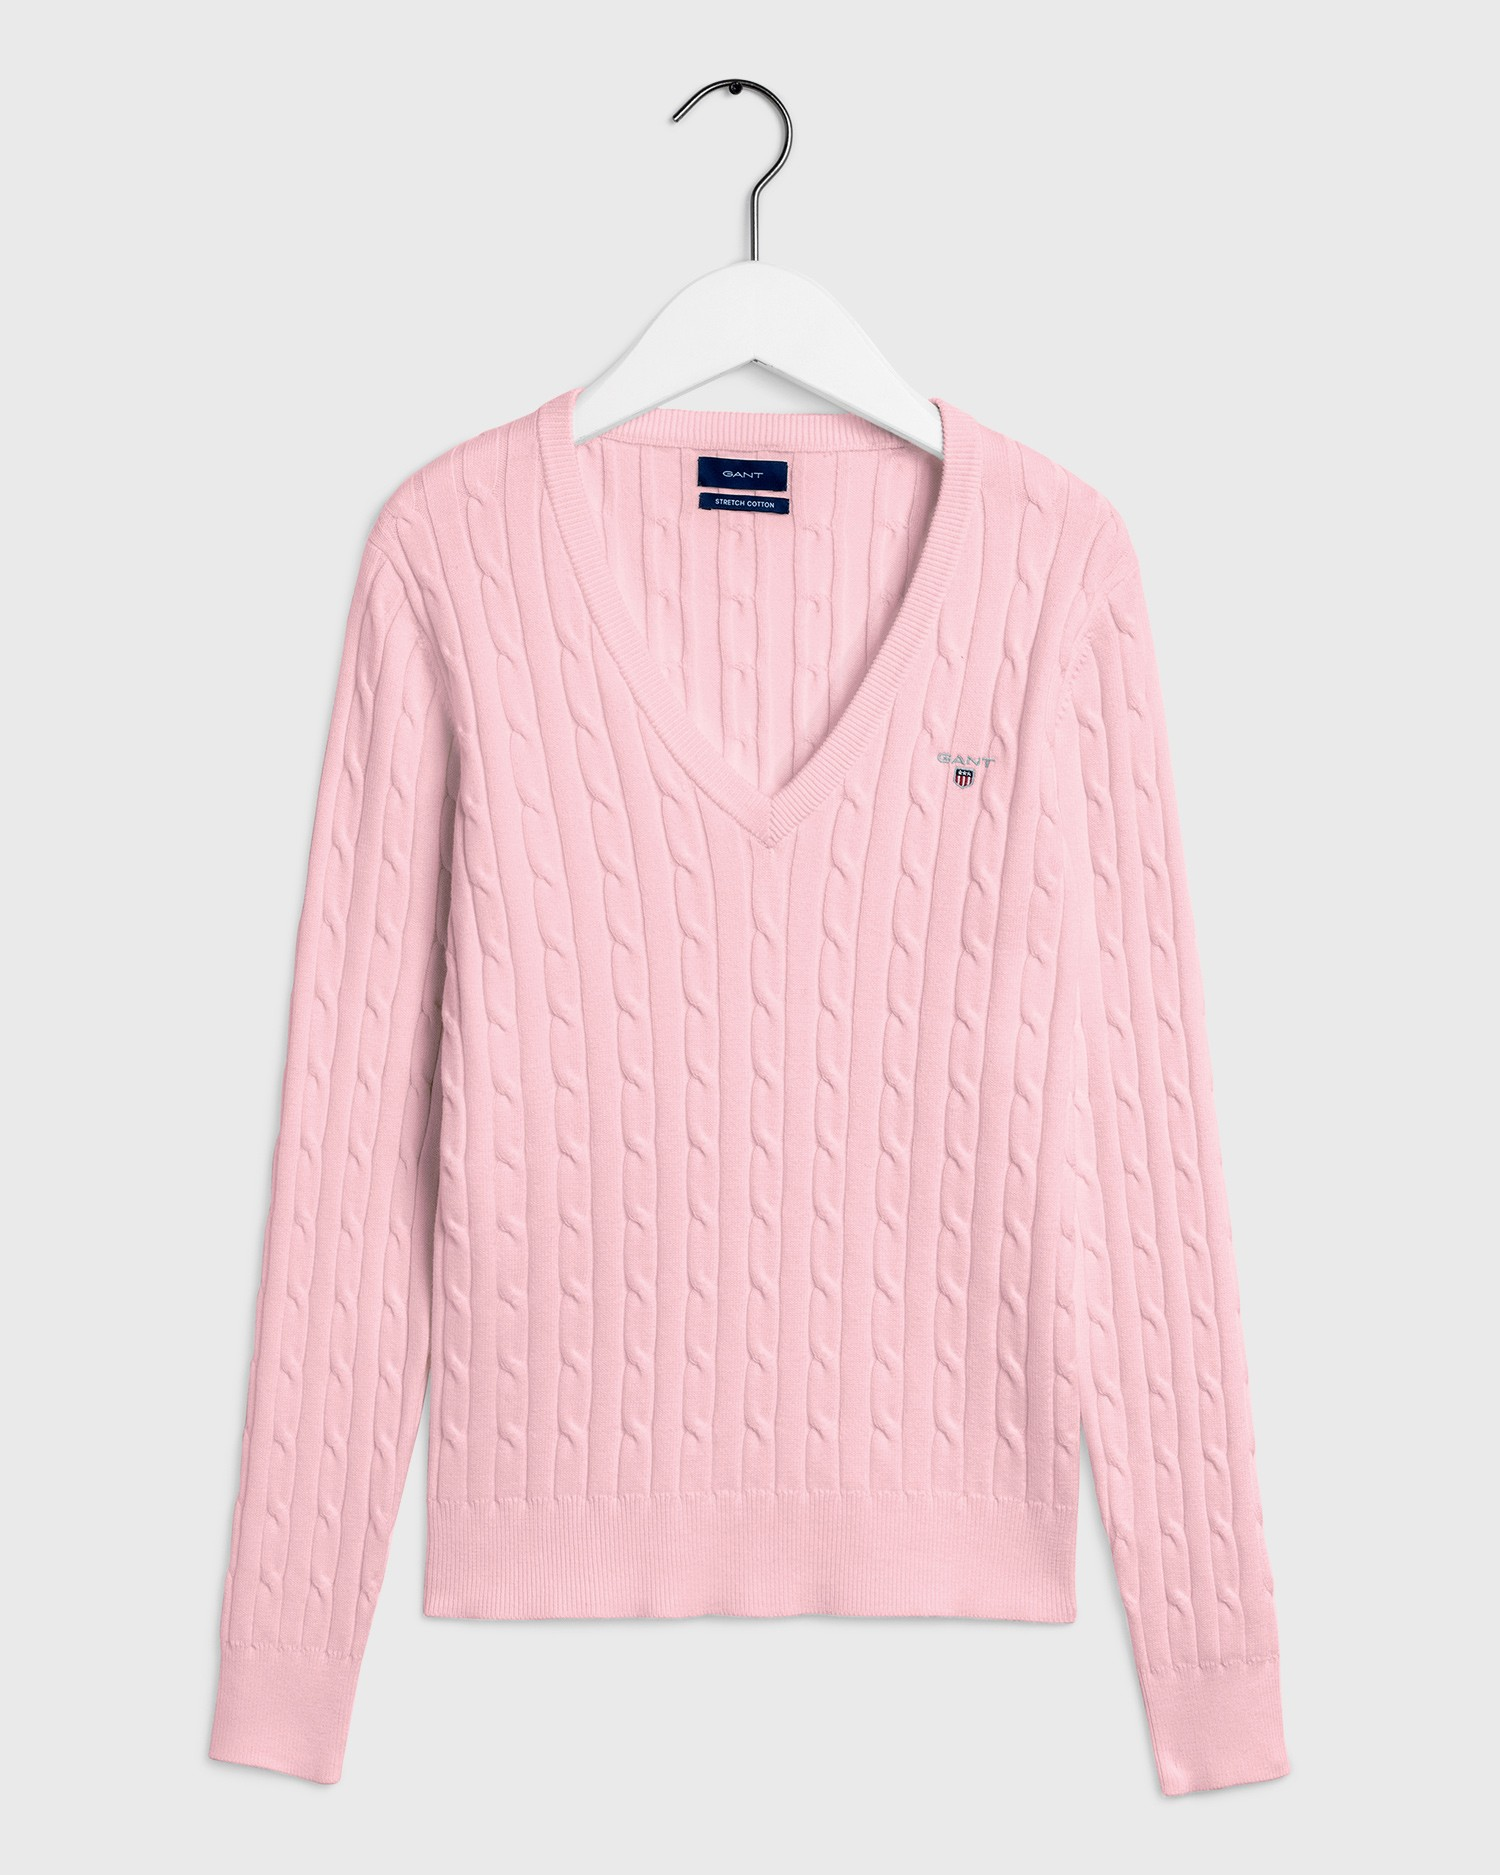 GANT Women's Stretch Cotton Cable V Neck Sweater - 480022